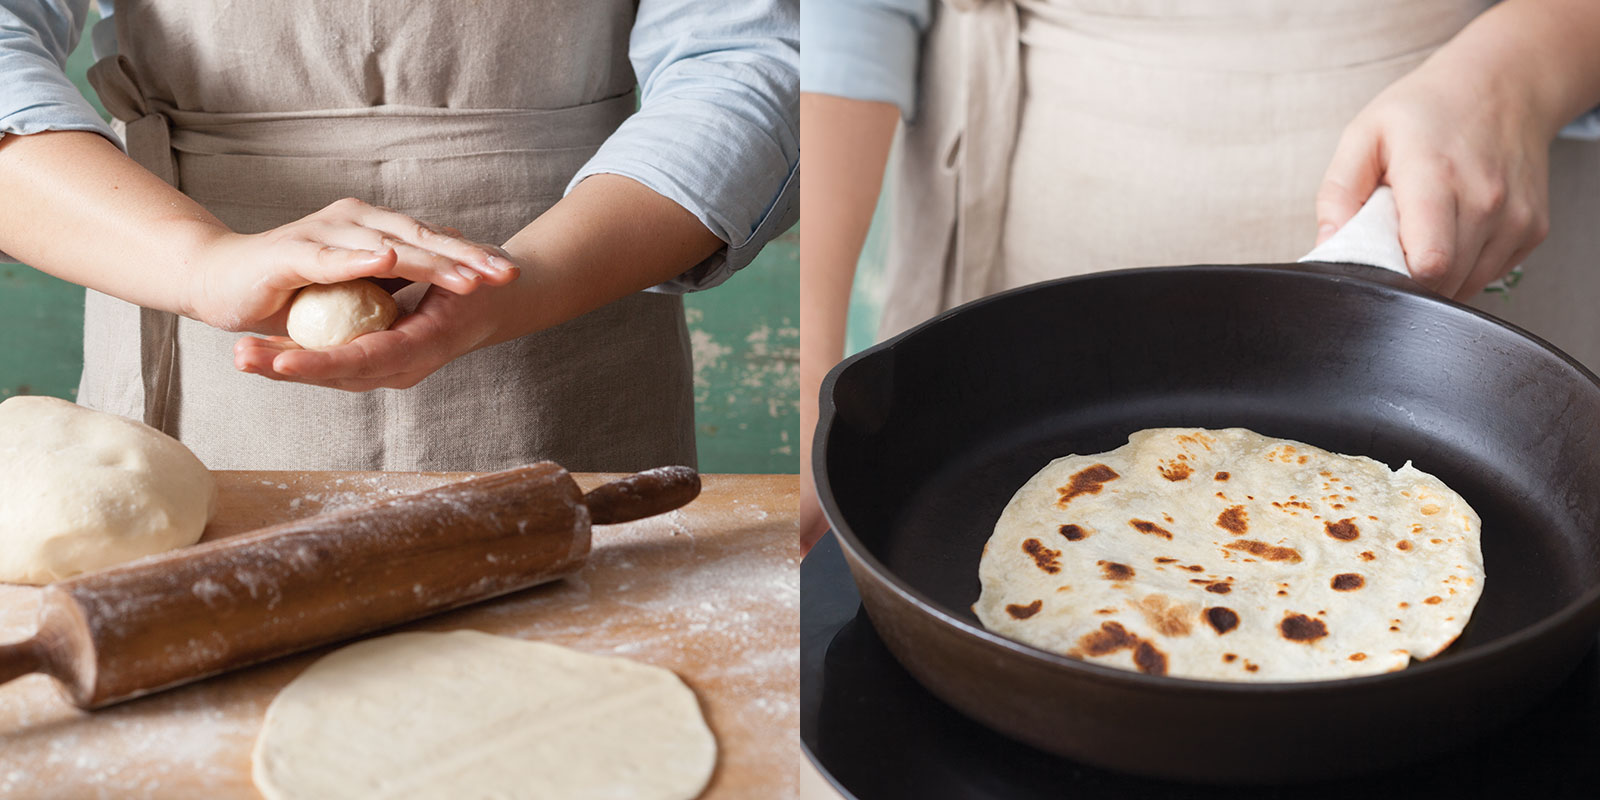 Buttermilk-Bacon Fat Tortillas